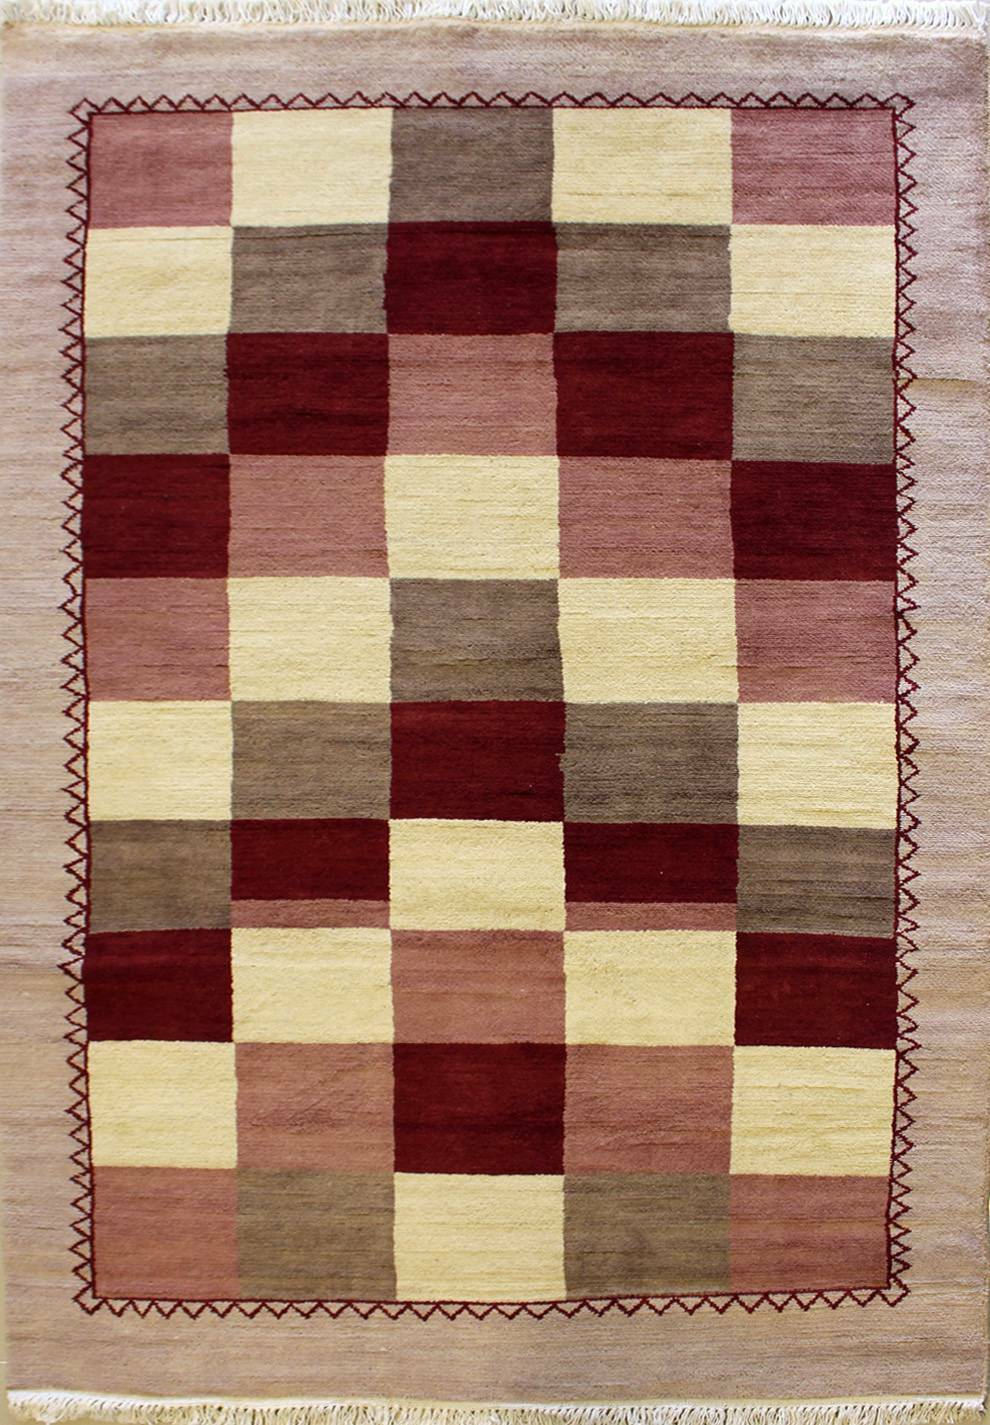 Rugstc 4x6 Senneh Gabbeh MulticolGoldt Area Rug,Vegetable dye, Hand-Knotted,Wool Hand-Knotted,Wool Hand-Knotted,Wool 98d6e2